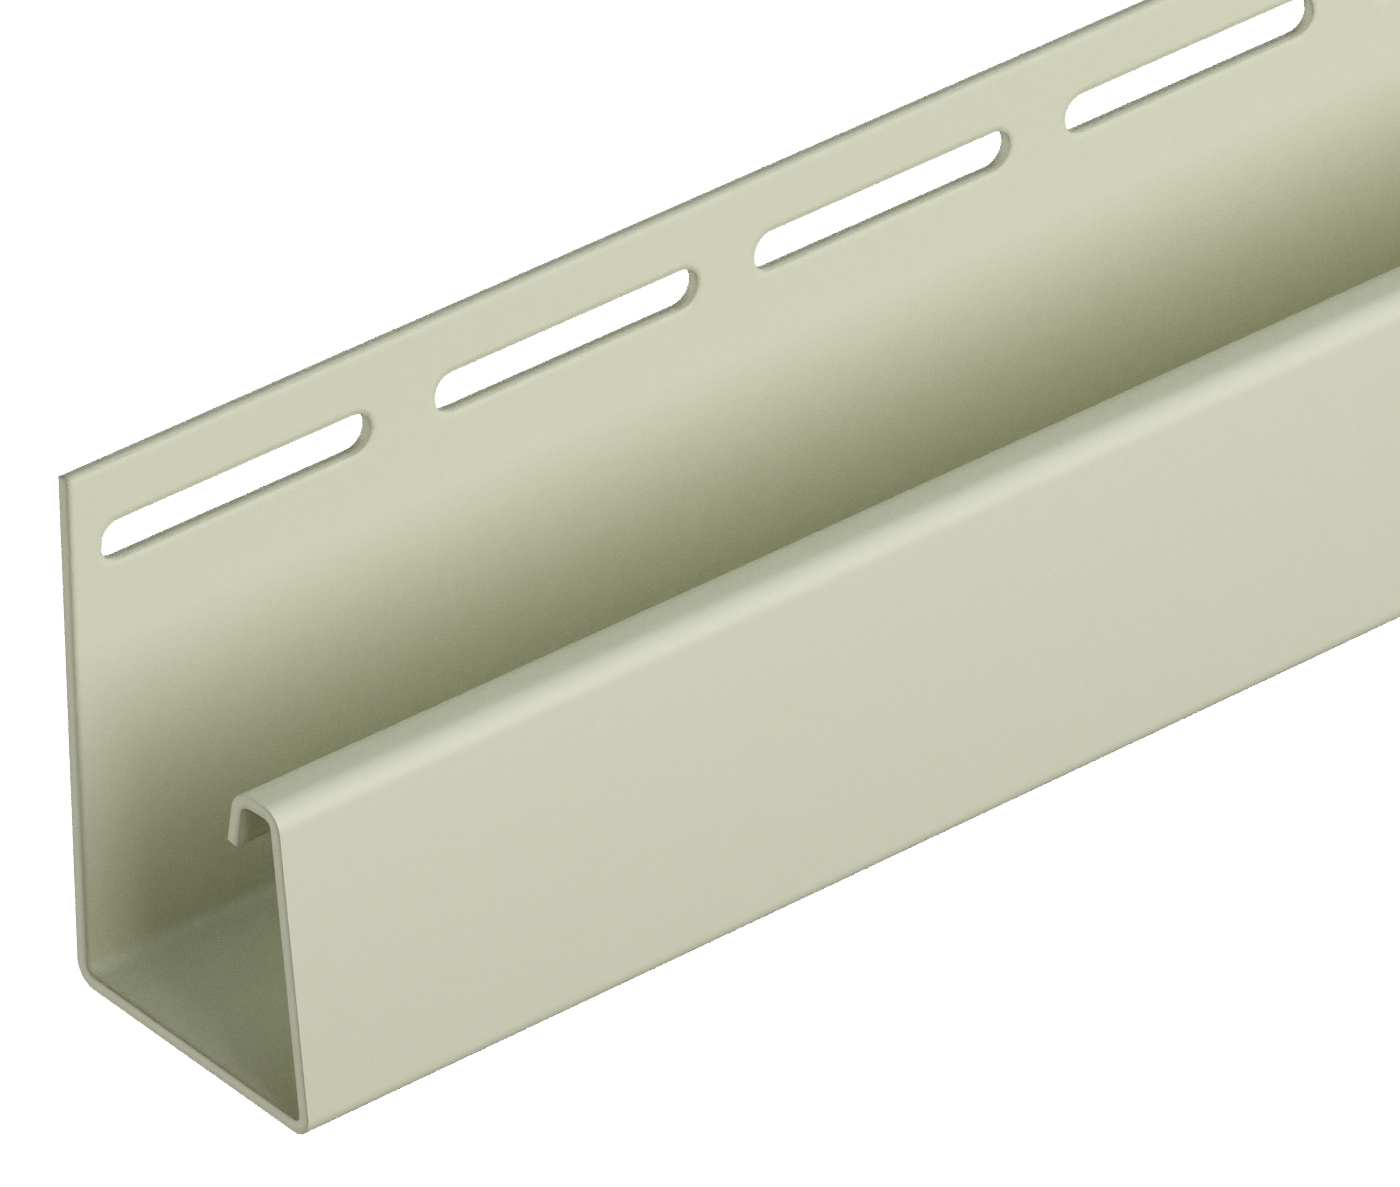 Виниловый сайдинг - Accessories - LUX stone - FACADE J-STRIP 30 MM (BERG, BURG, FLEMISH, KLINKER) - Facade J-strip 30 mm Pale yellow